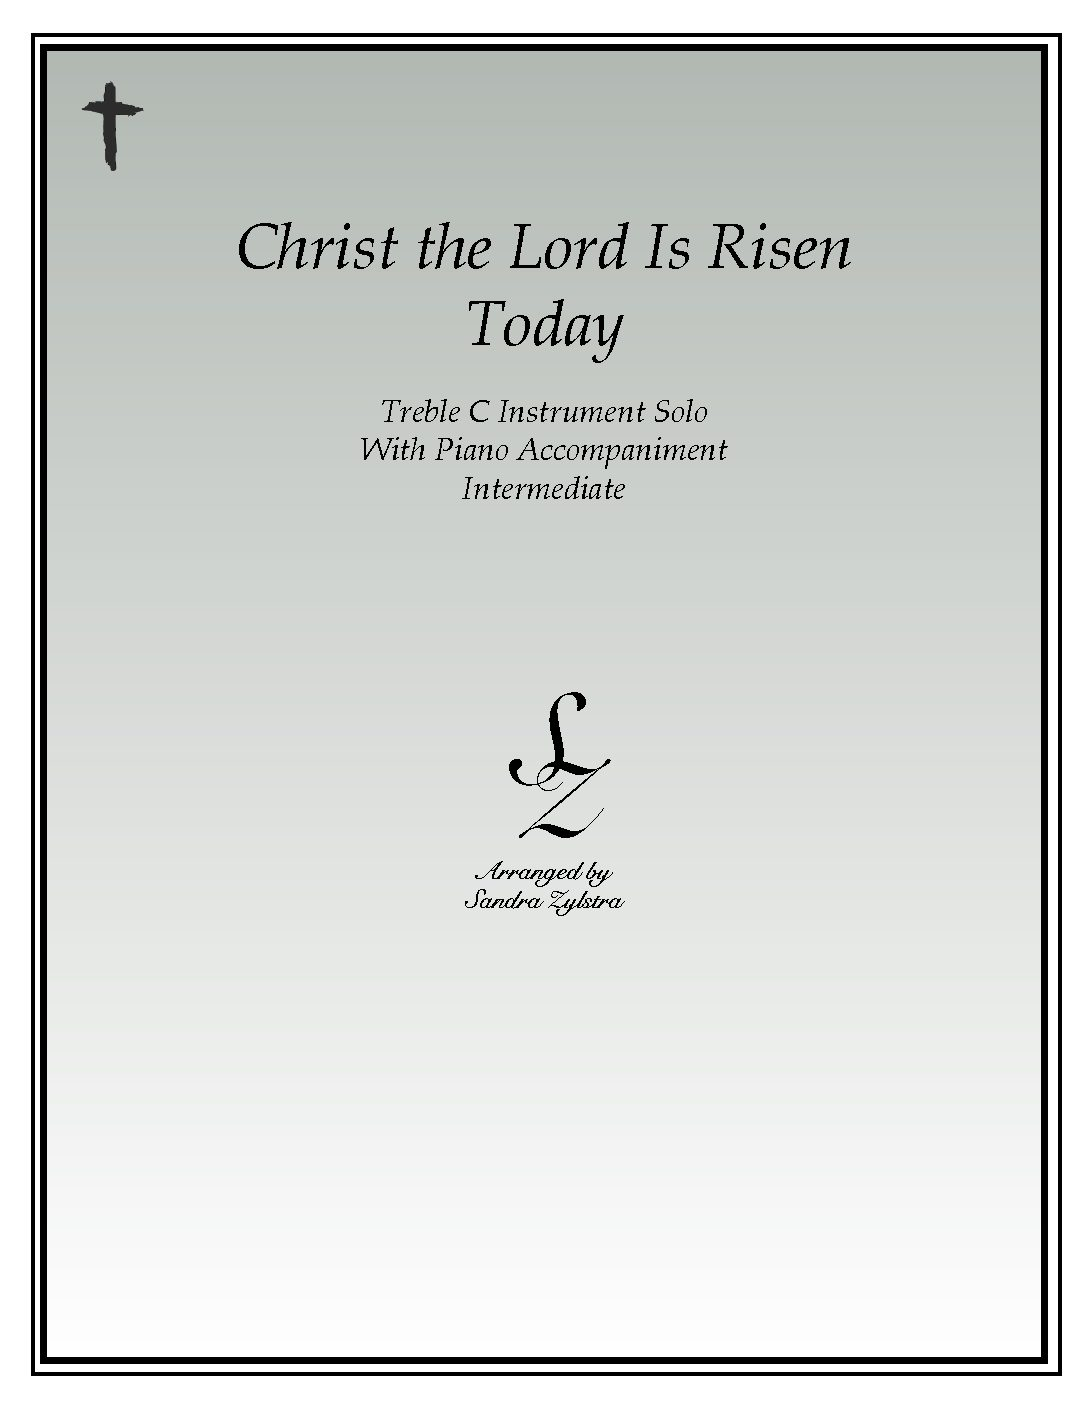 Christ The Lord Is Risen Today -Treble C Instrument Solo